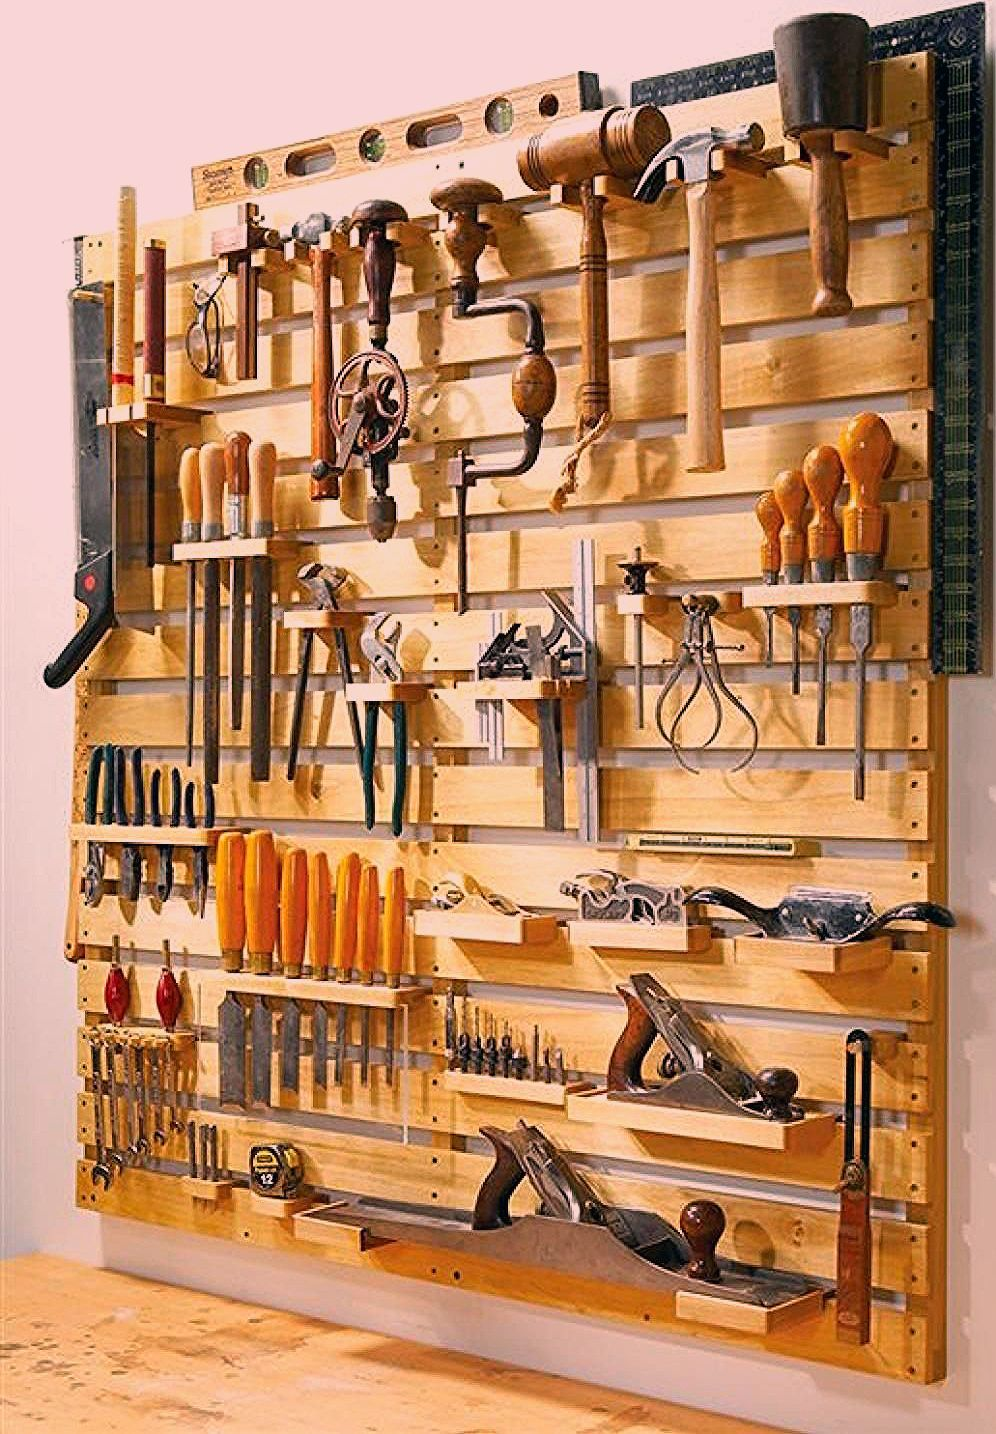 Pin By Tommie Carroll On Aamiainen Support Mural Modern Woodworking Projects Pallet Projects Diy Garden